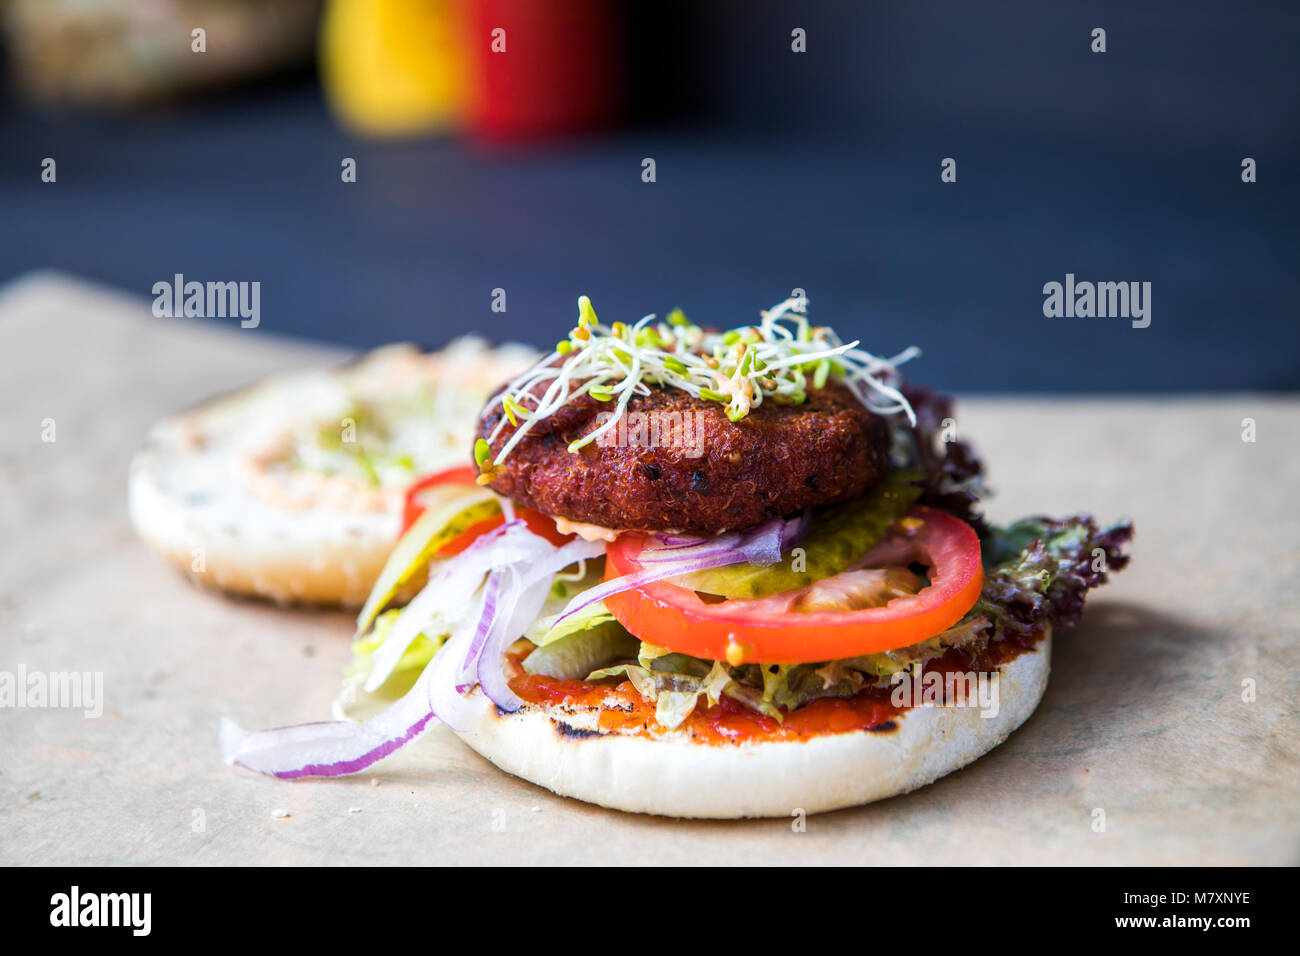 Quinoa burger, vegan street food with tomato and sprouting herbs. - Stock Image